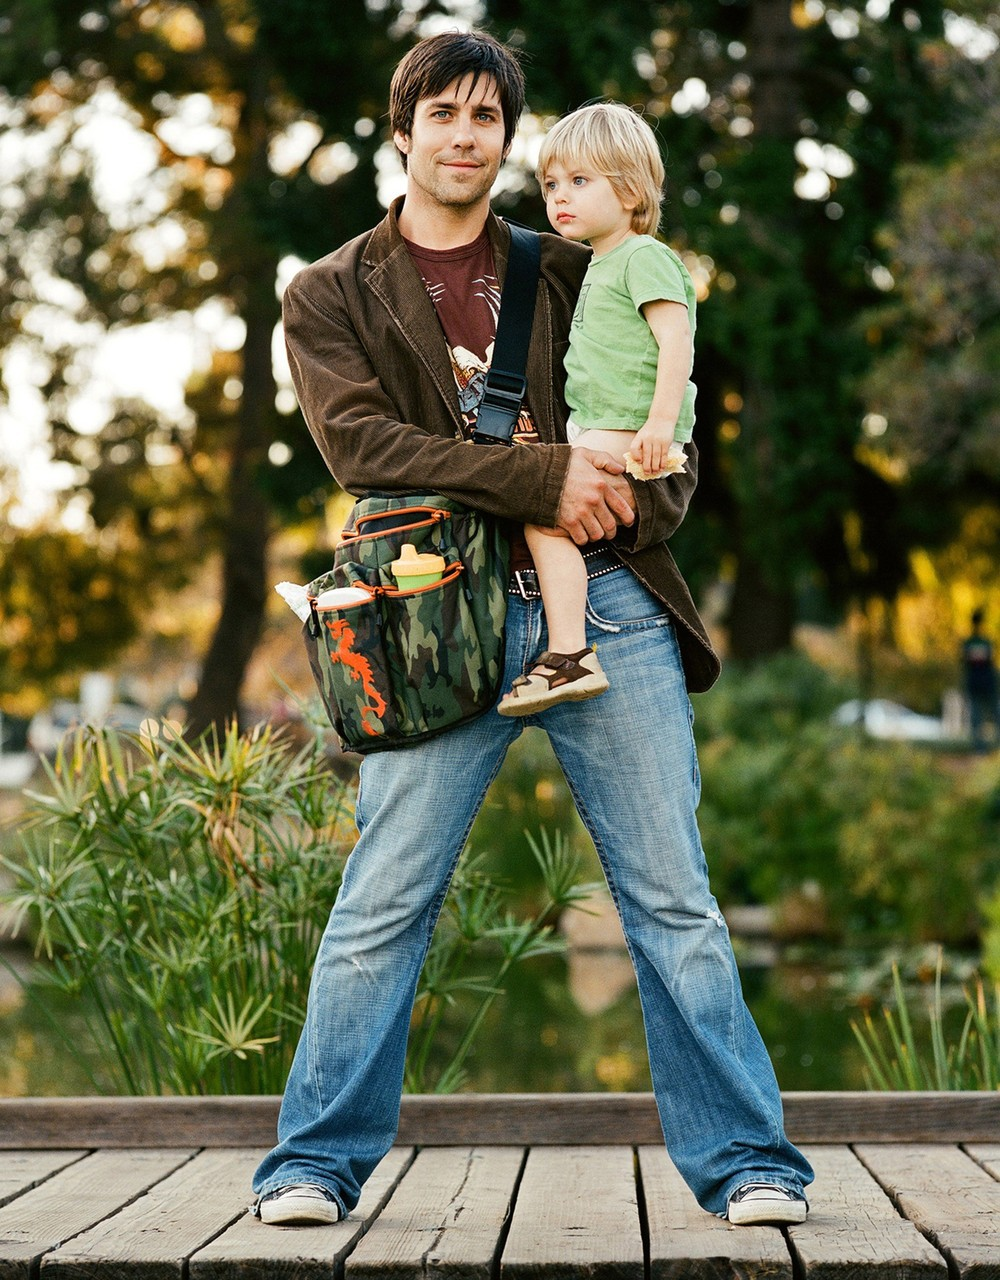 Cool diaper bag